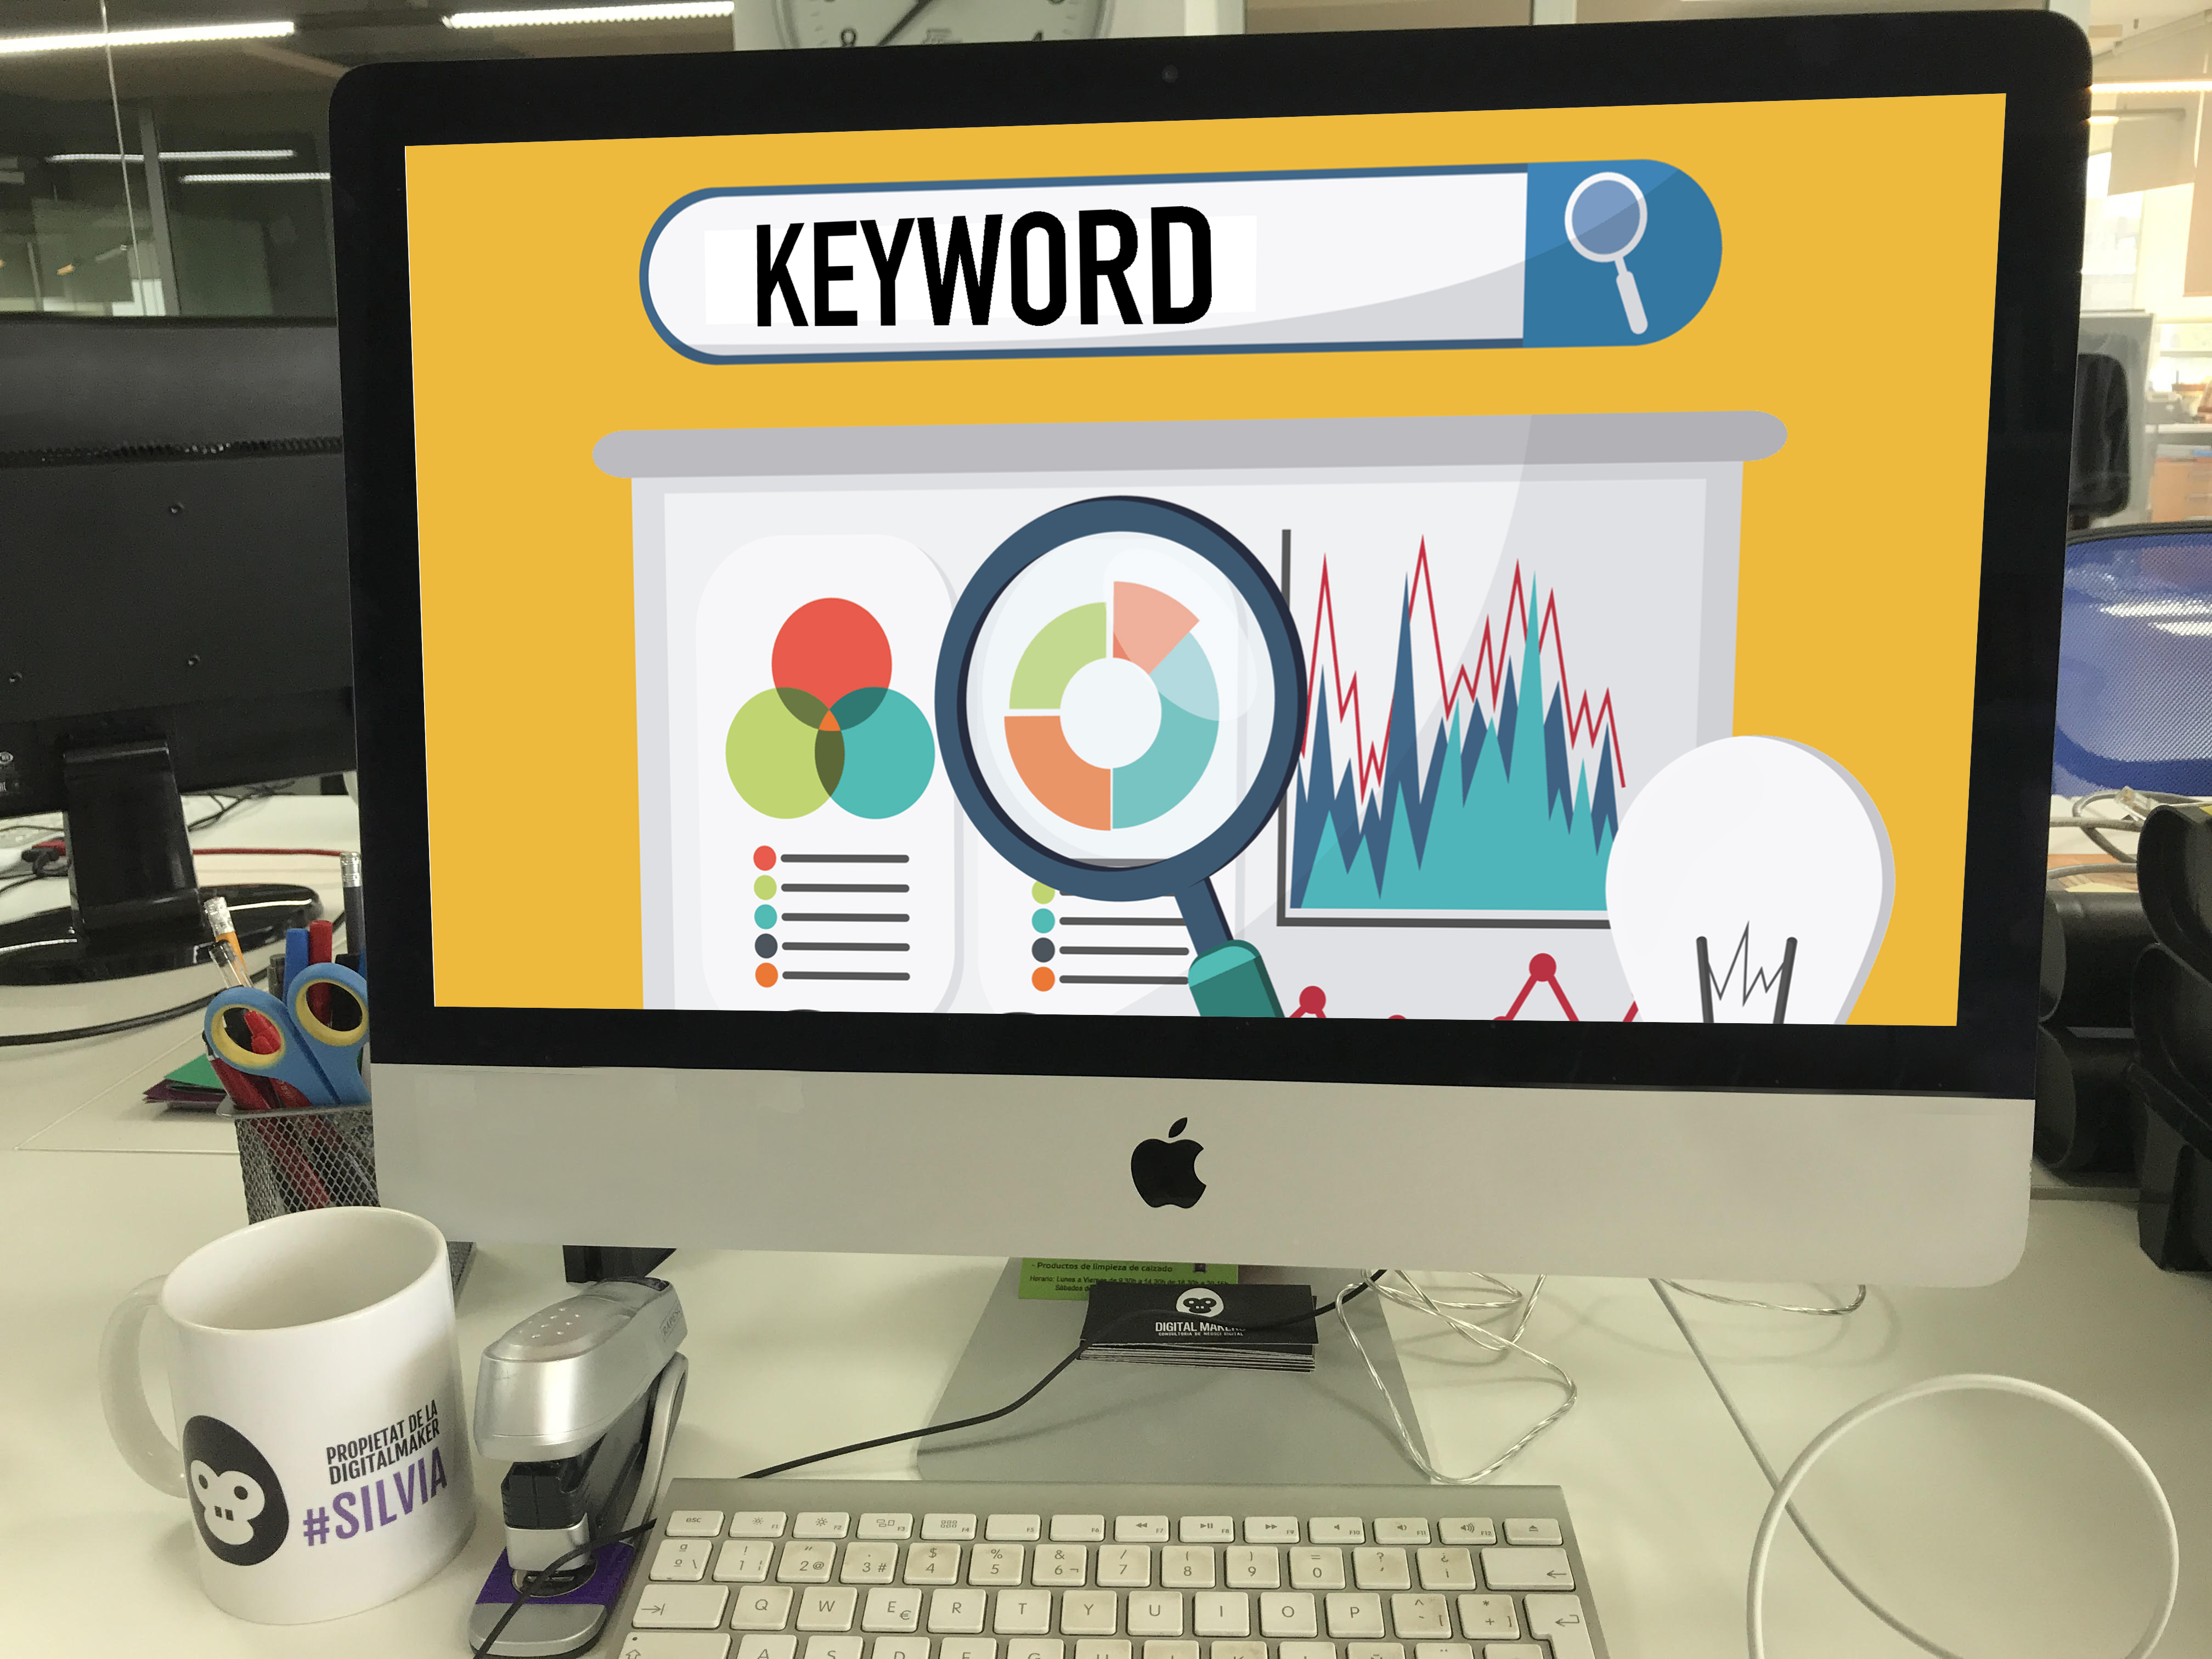 Tools to manage Keywords